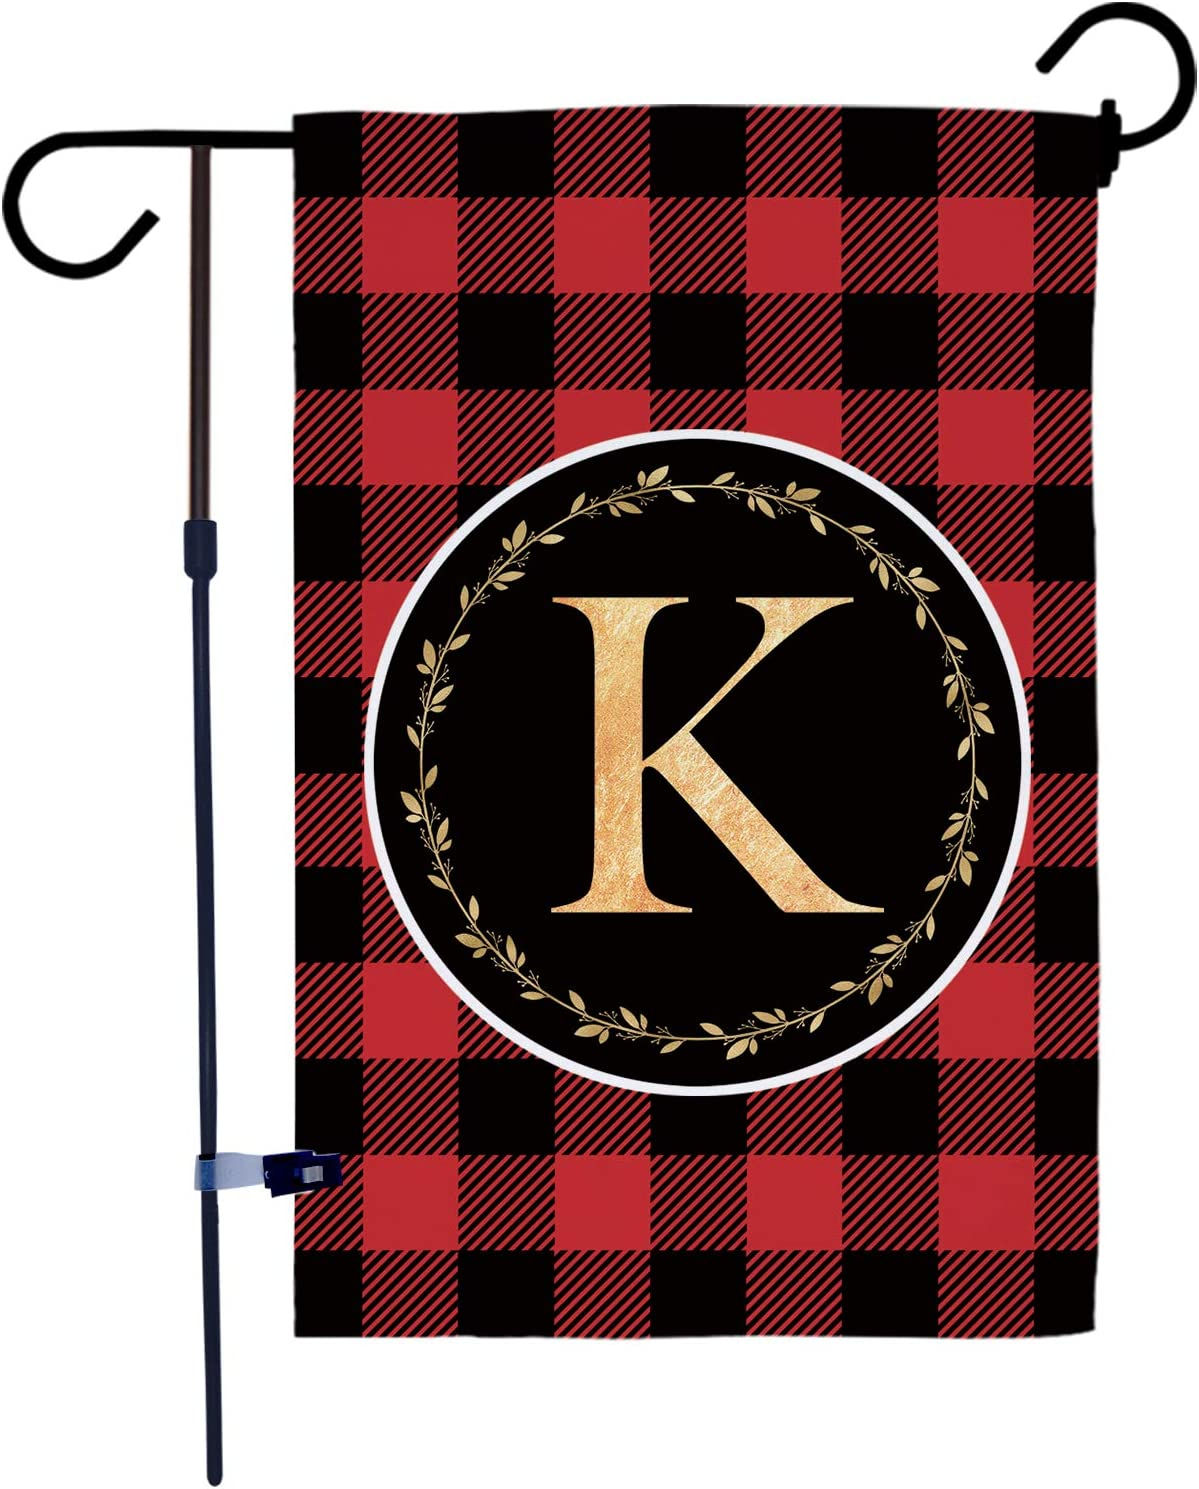 AKPOWER Small Garden Flag Black and Red Plaid Check Vertical Double Sided Farmhouse Burlap Yard Outdoor Decor Classic Monogram Letter 12.5 x 18 Inch K